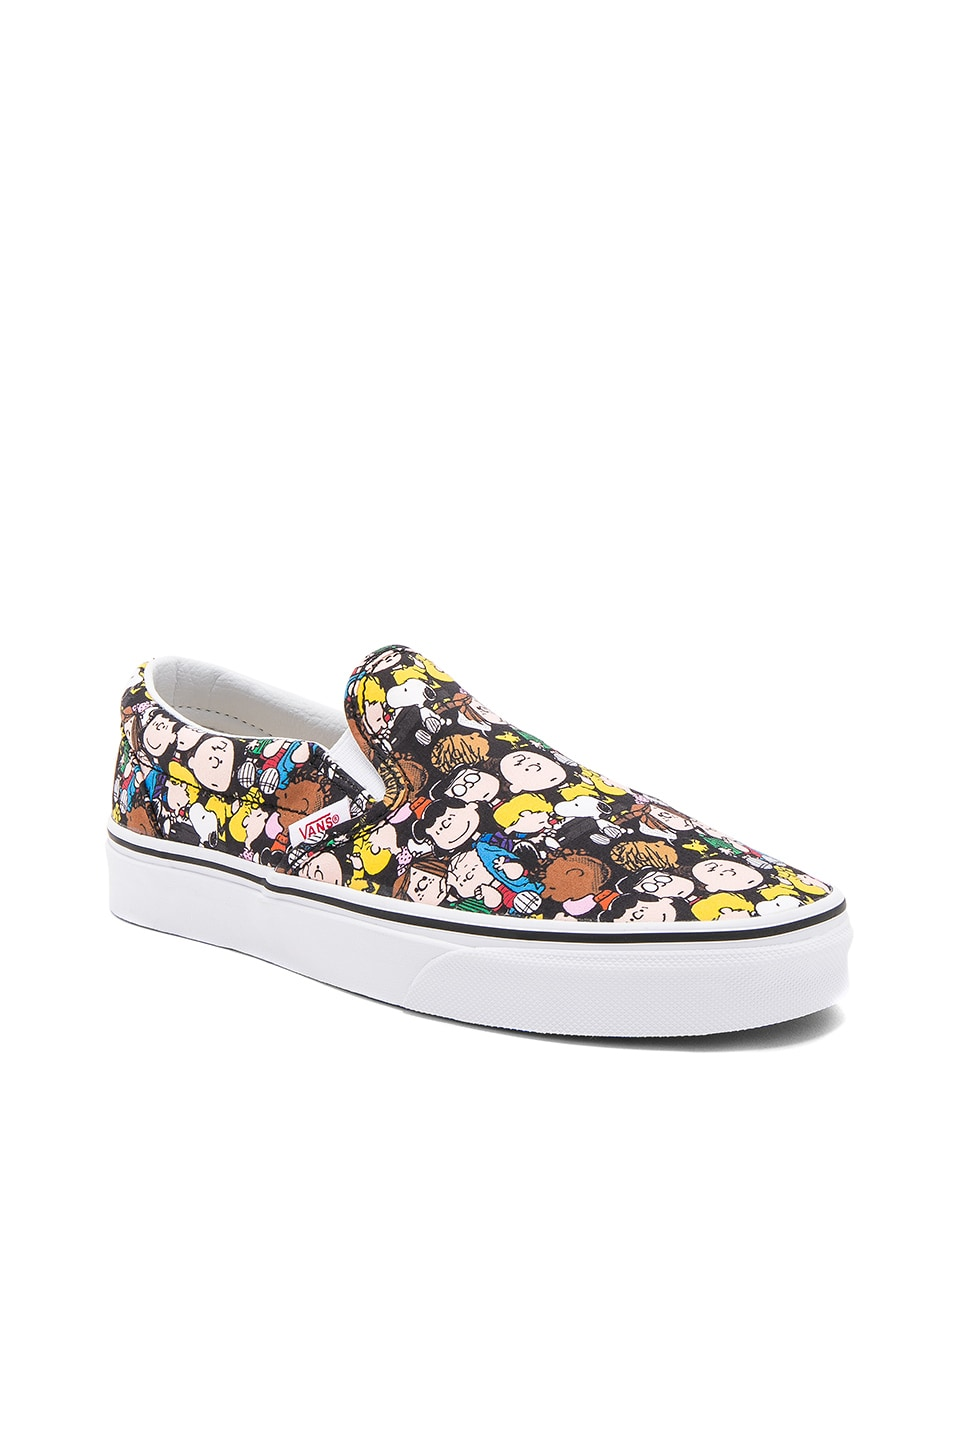 Classic Slip On Peanuts by Vans